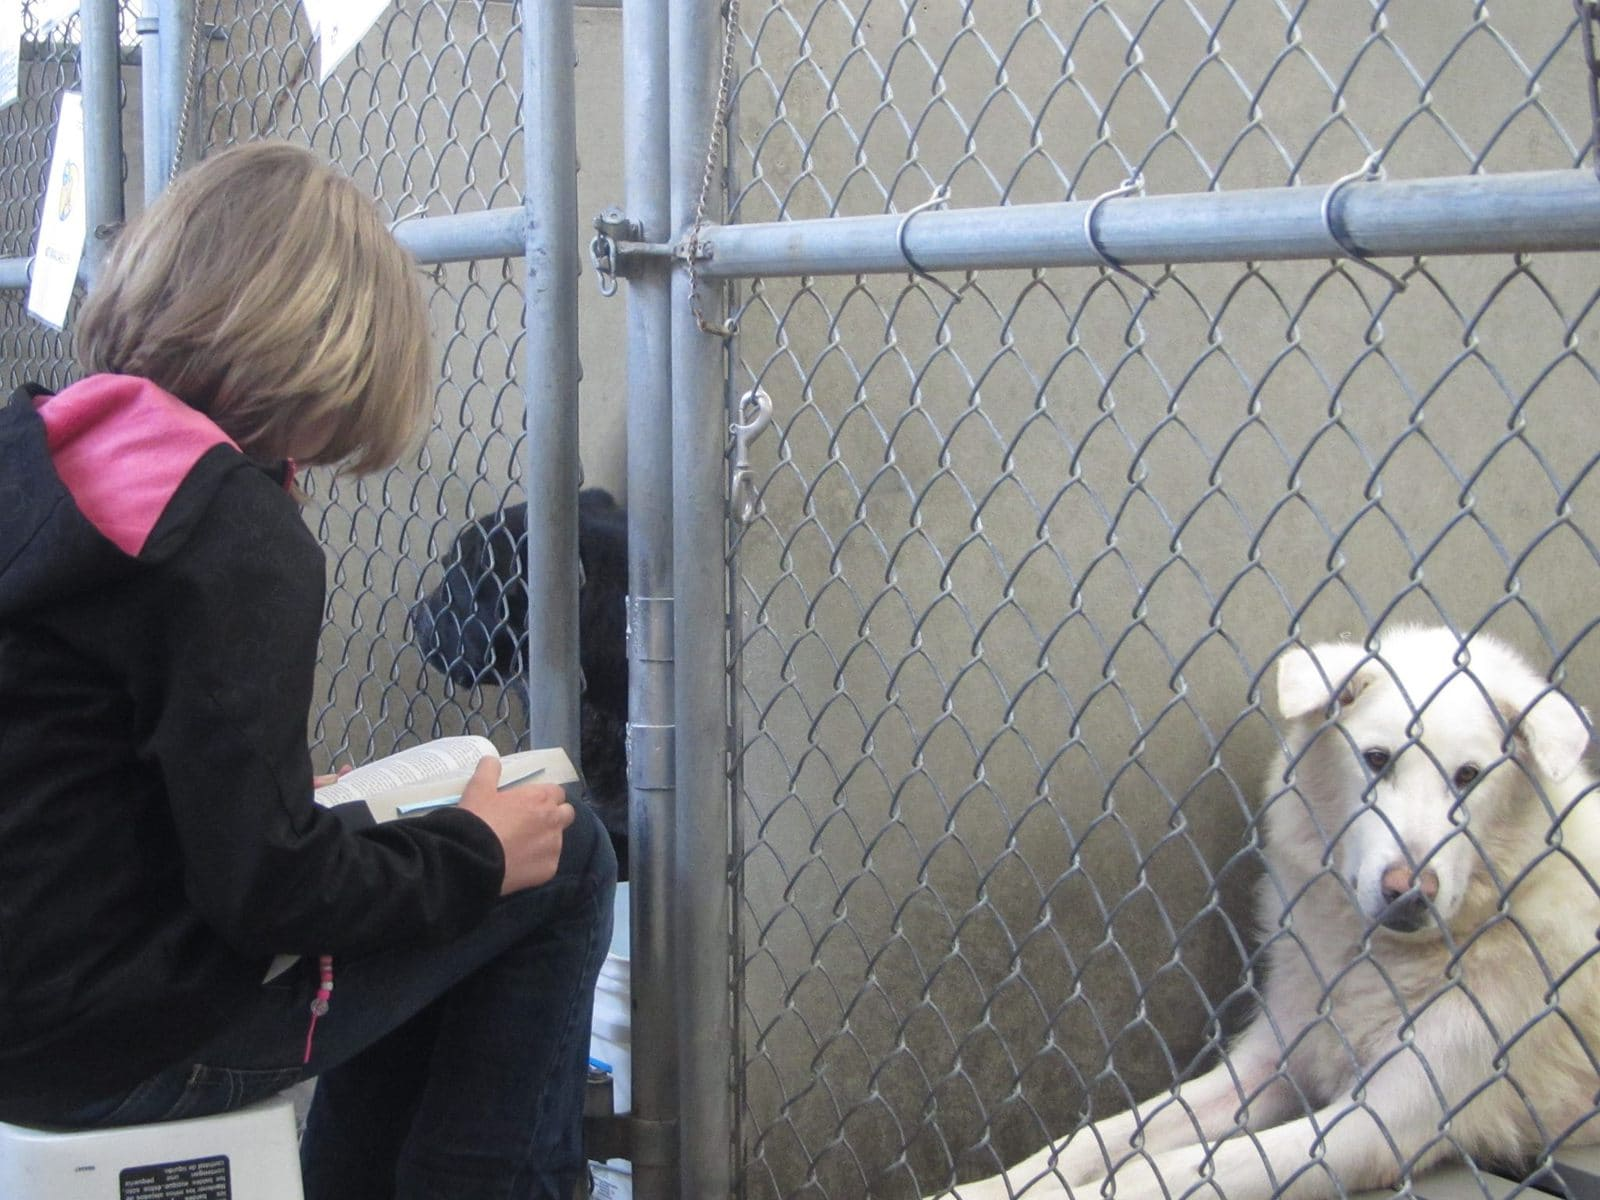 Children calm shelter animals by reading to them